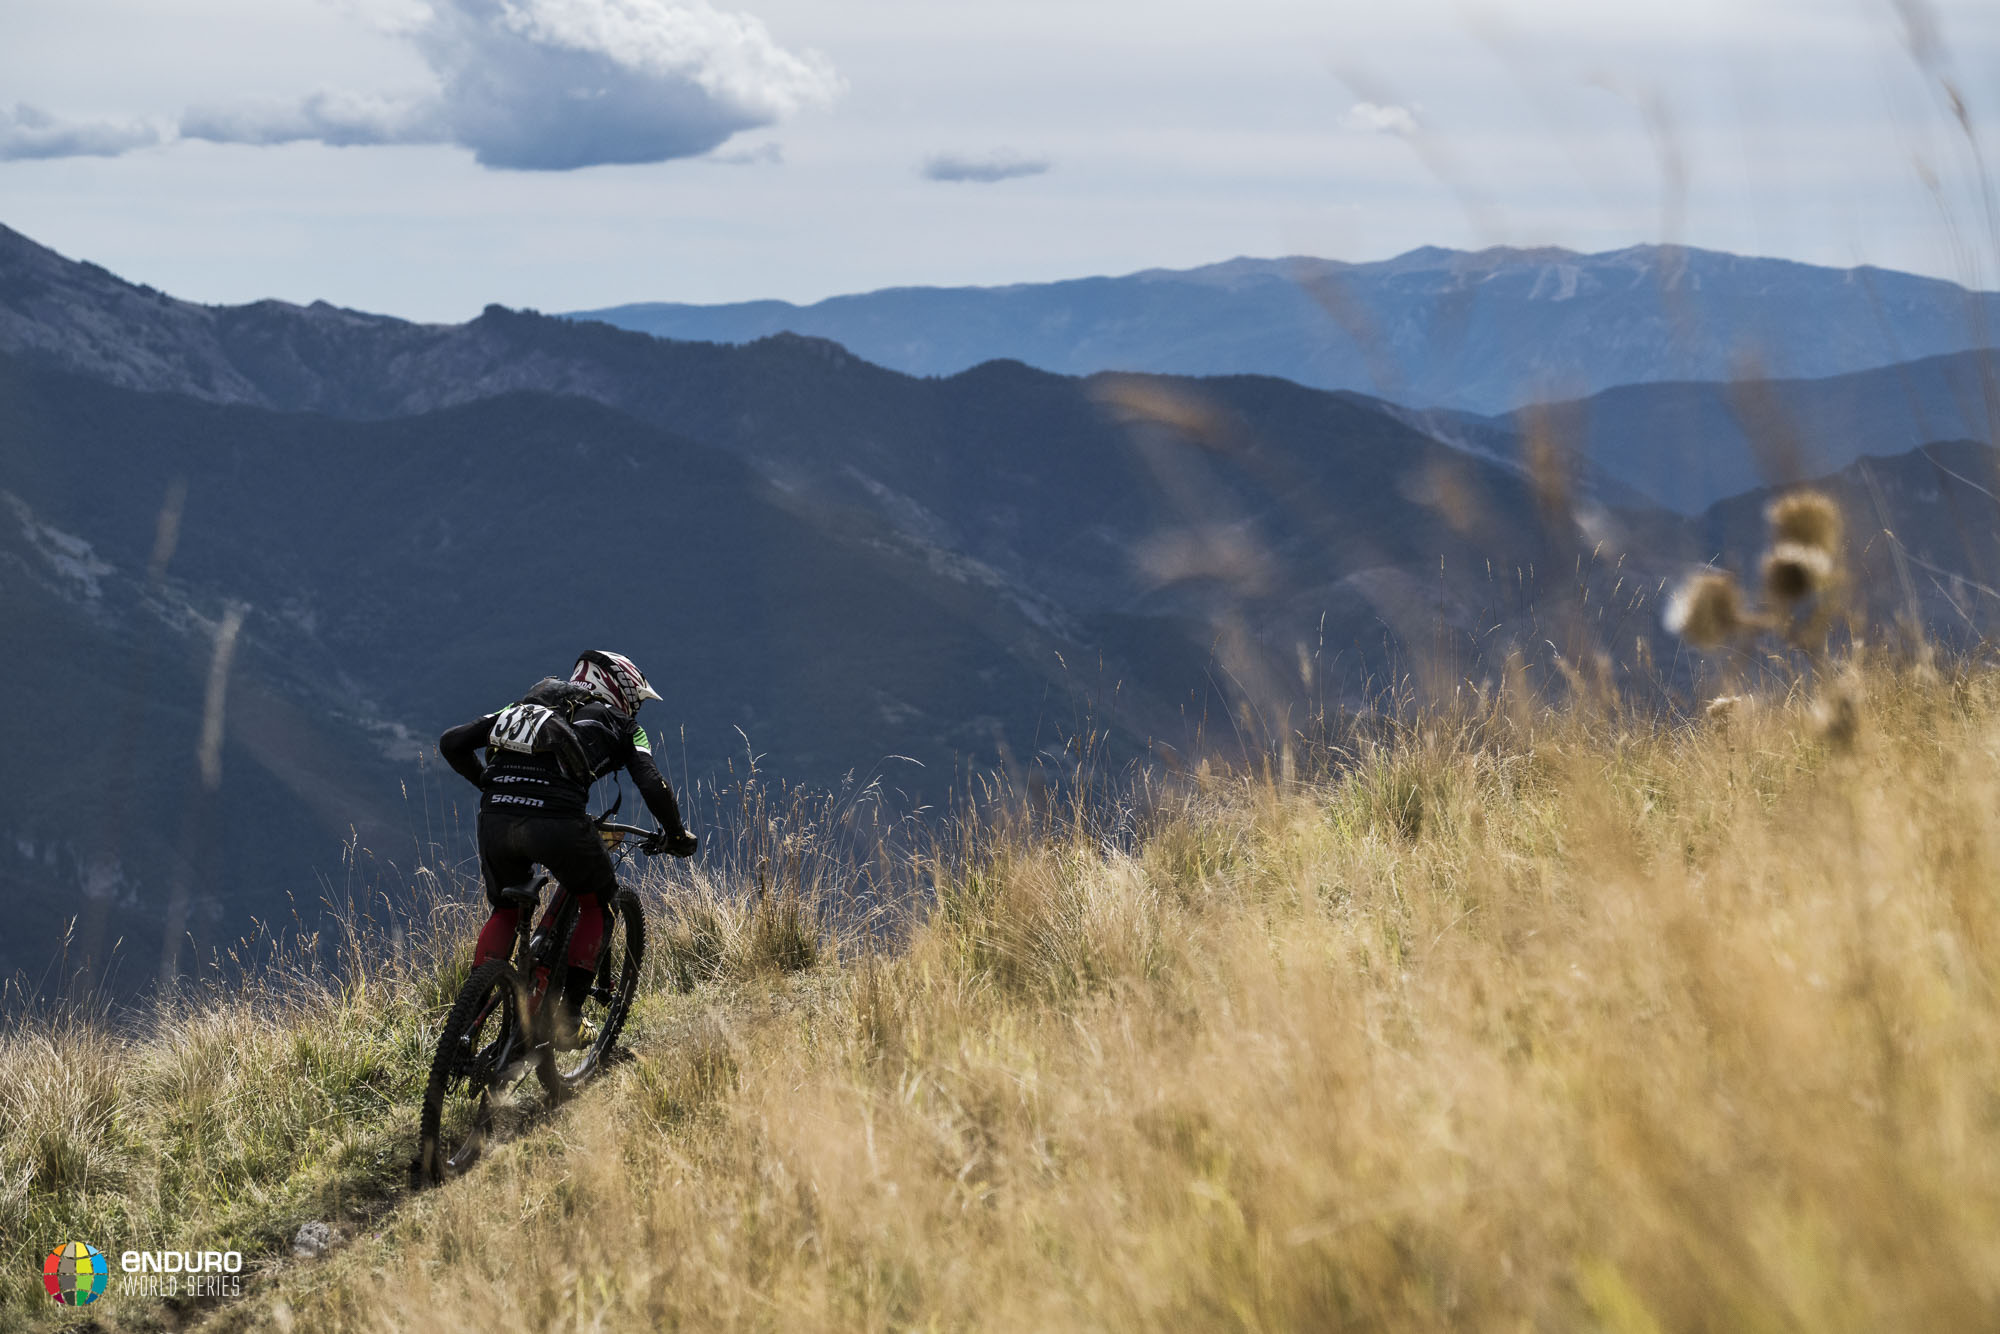 Series leader Michael Broderick finds himself in 4th in the French mountains